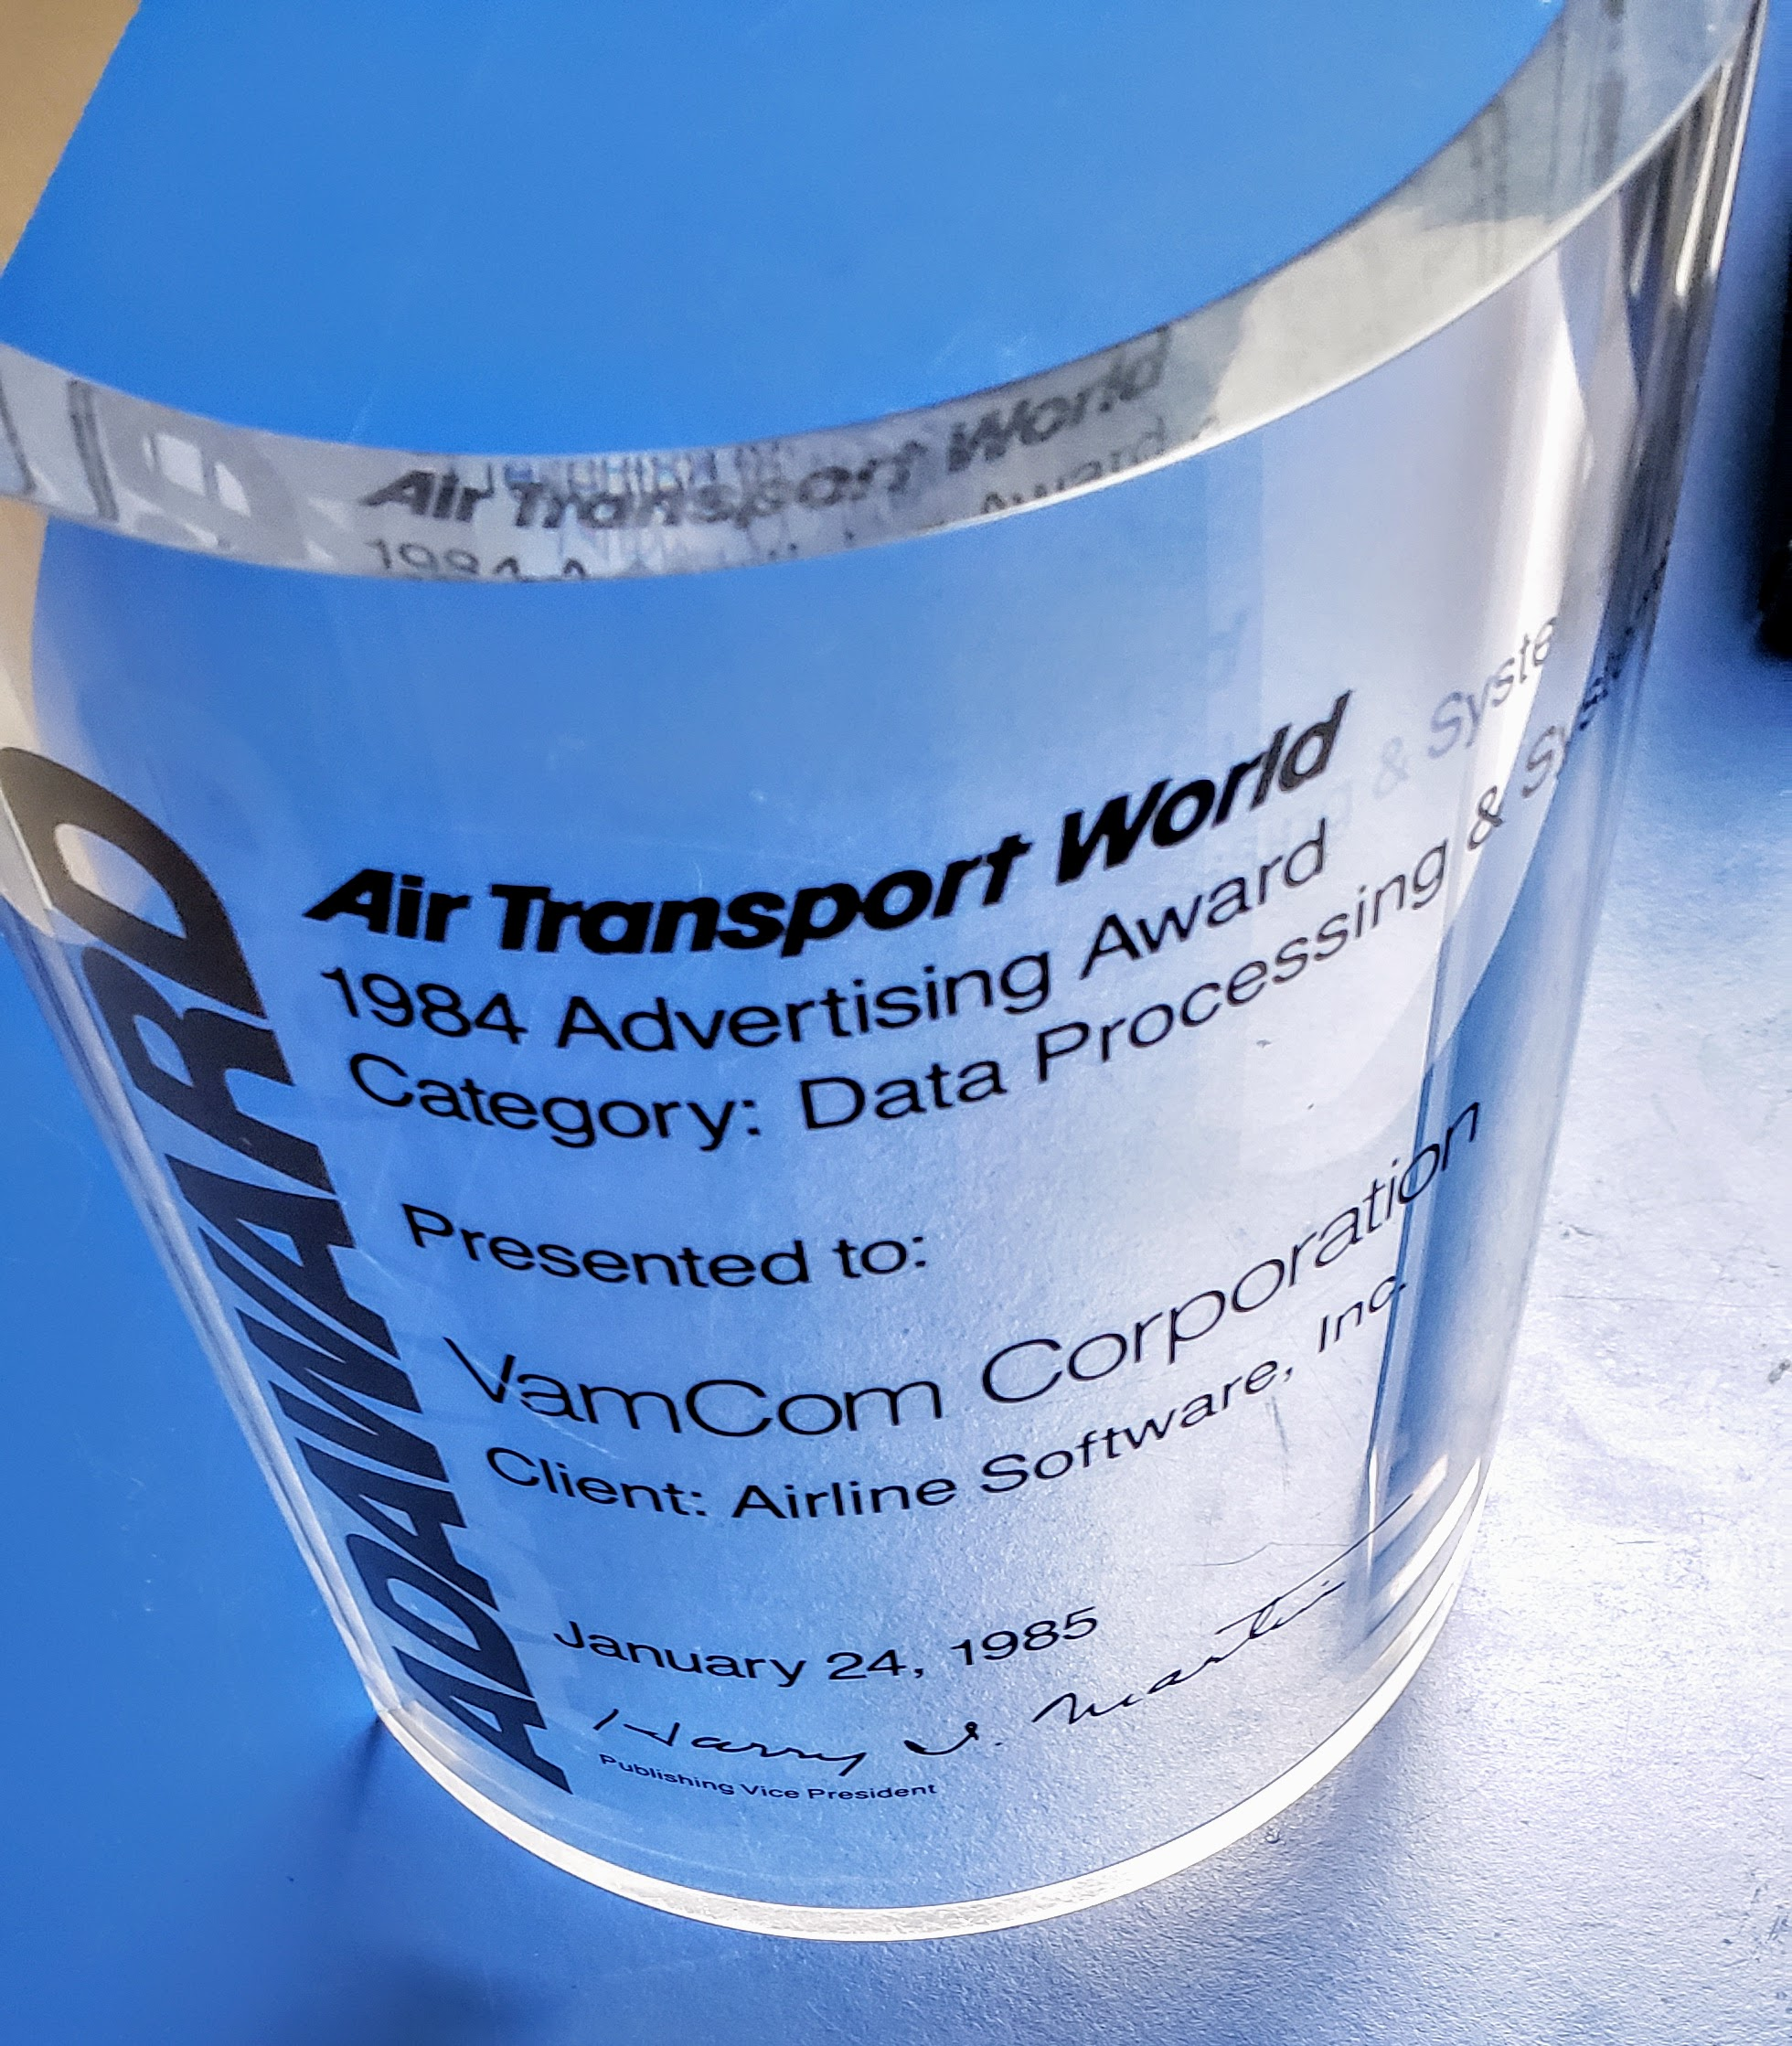 1984_airline software_air transport world